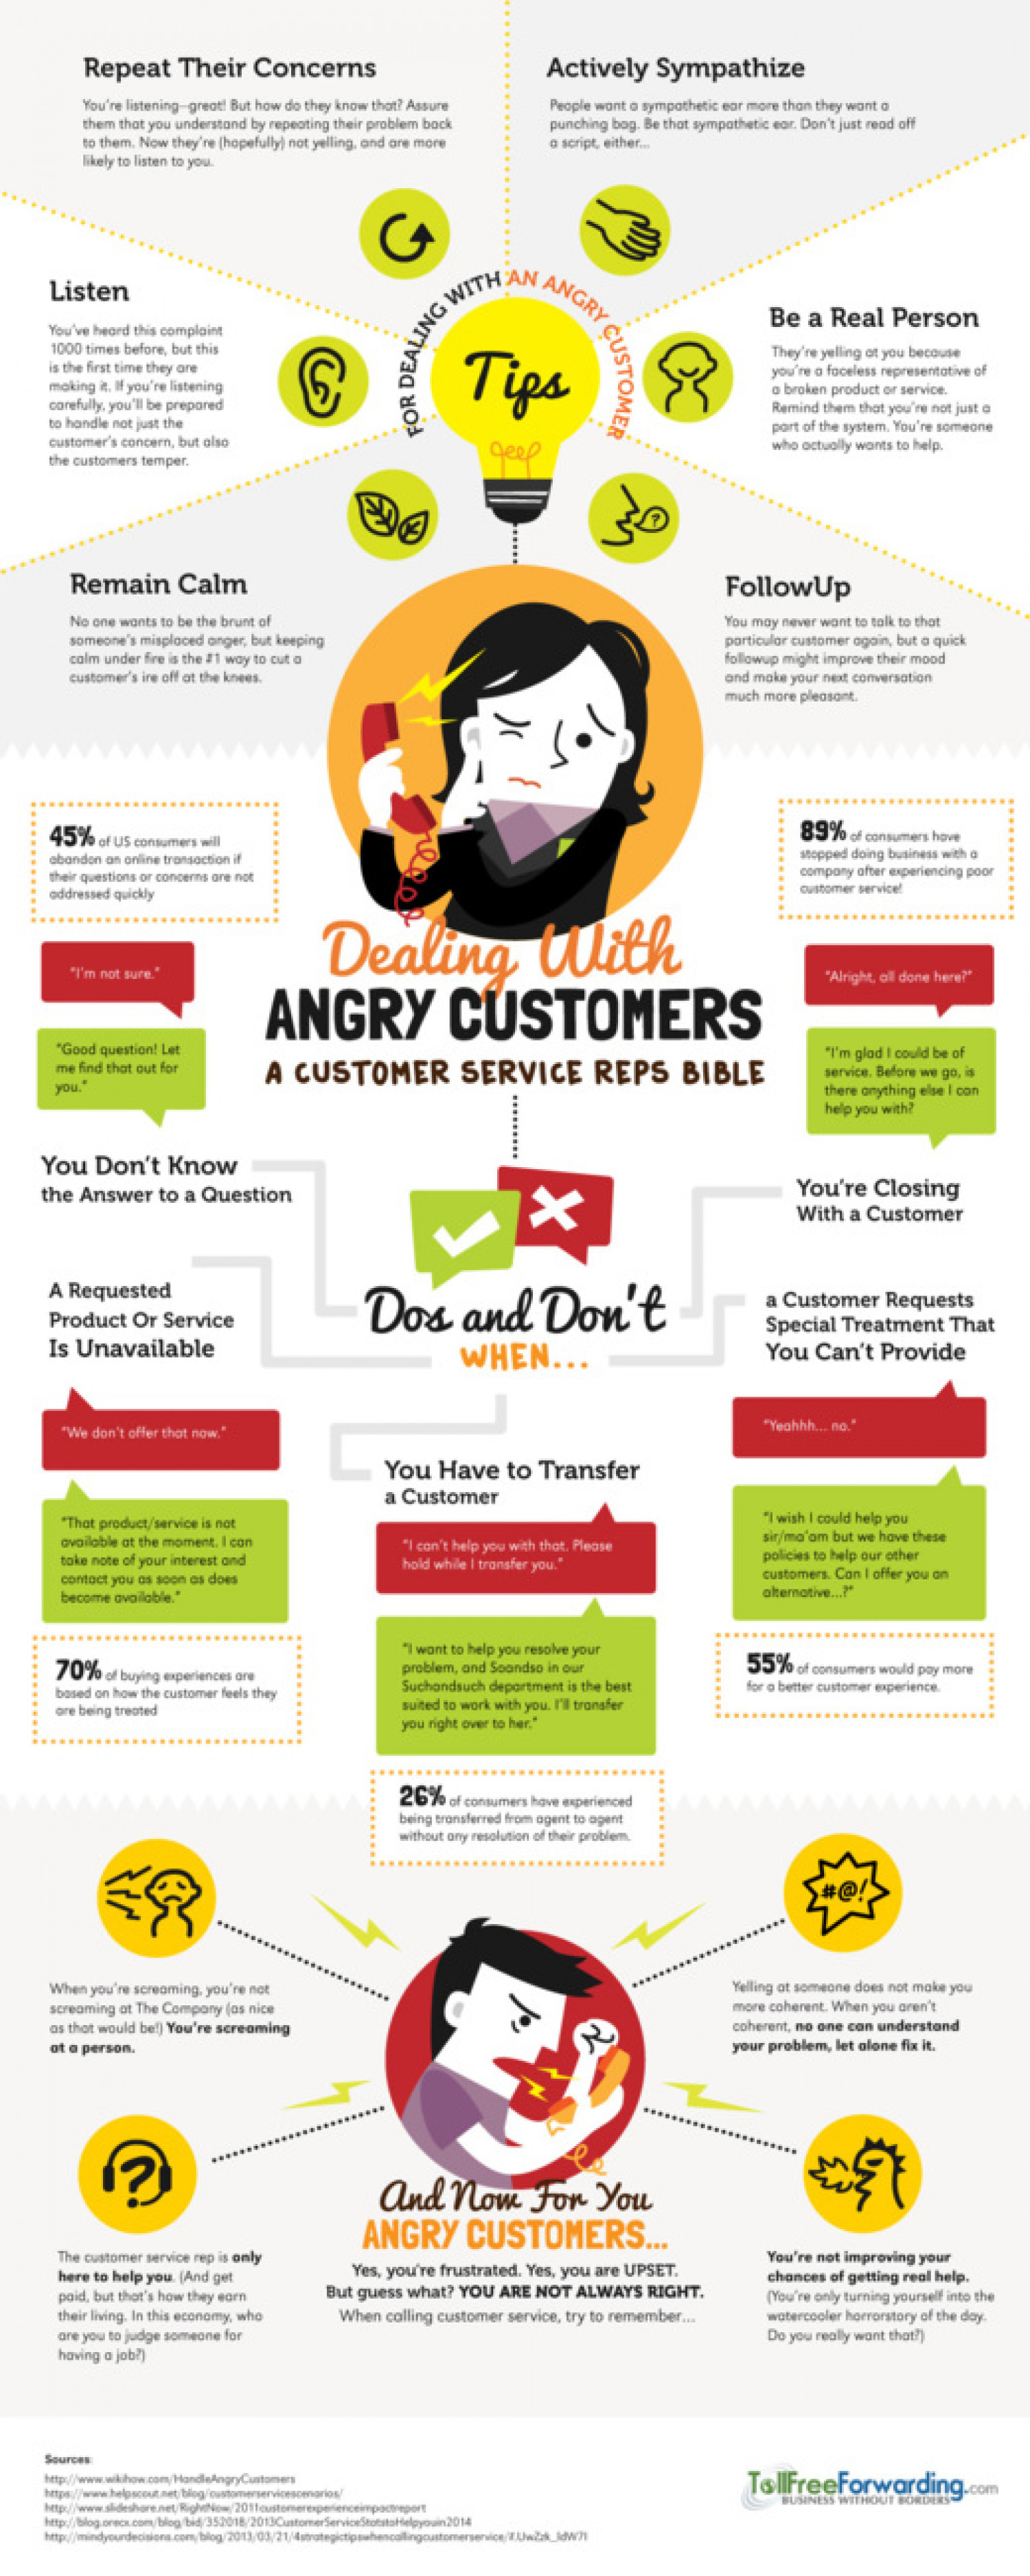 How to Deal with Angry Customers Infographic